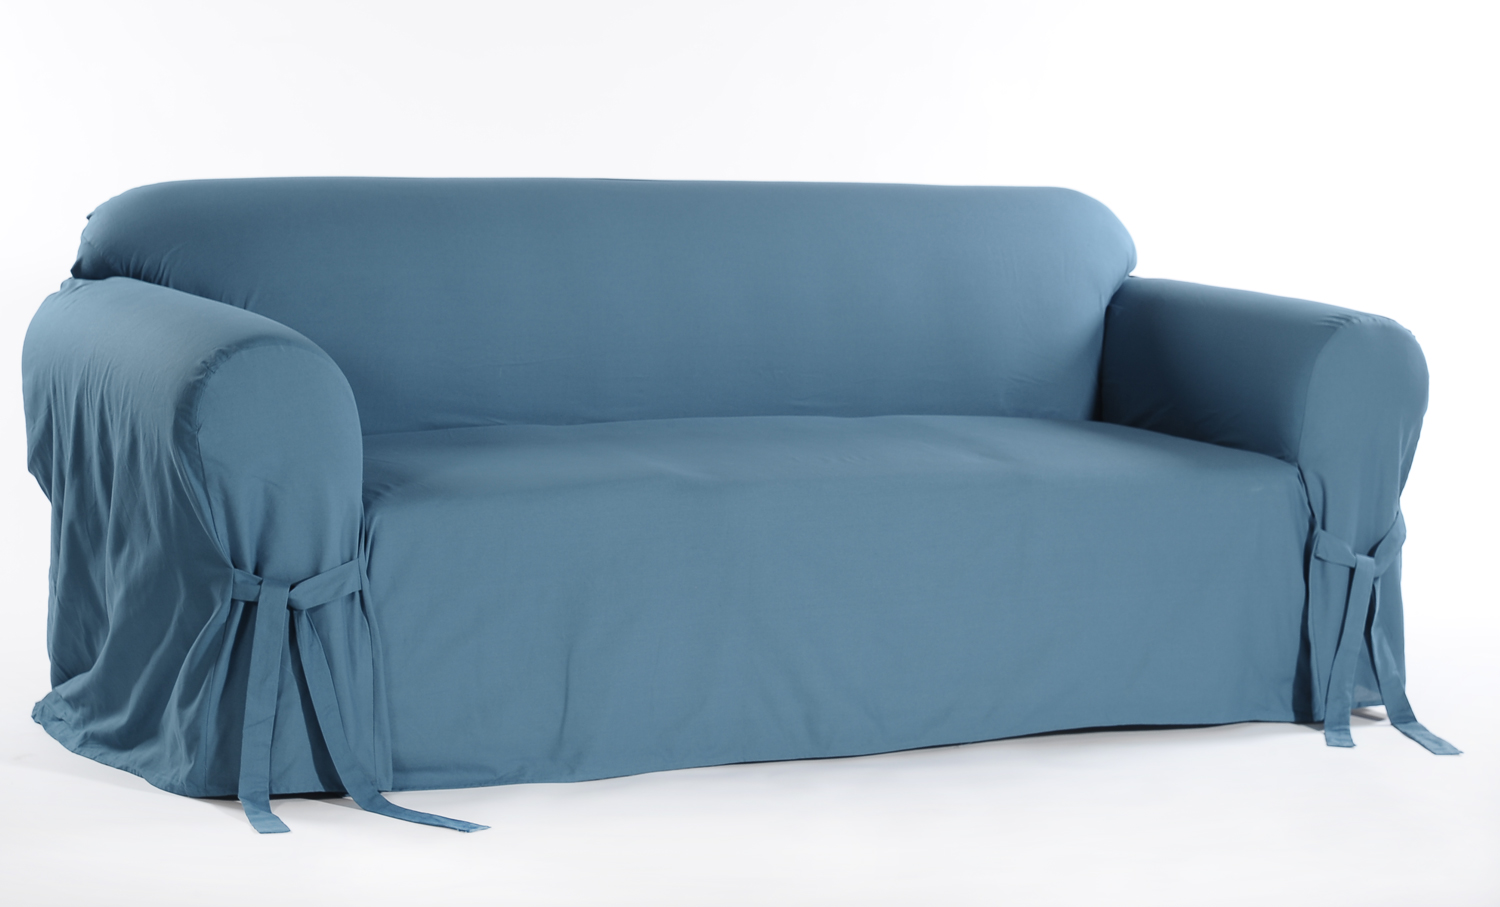 sofa bed covers kmart zeth queen sleeper reviews couch classic slipcovers cotton duck one piece loveseat slipcover